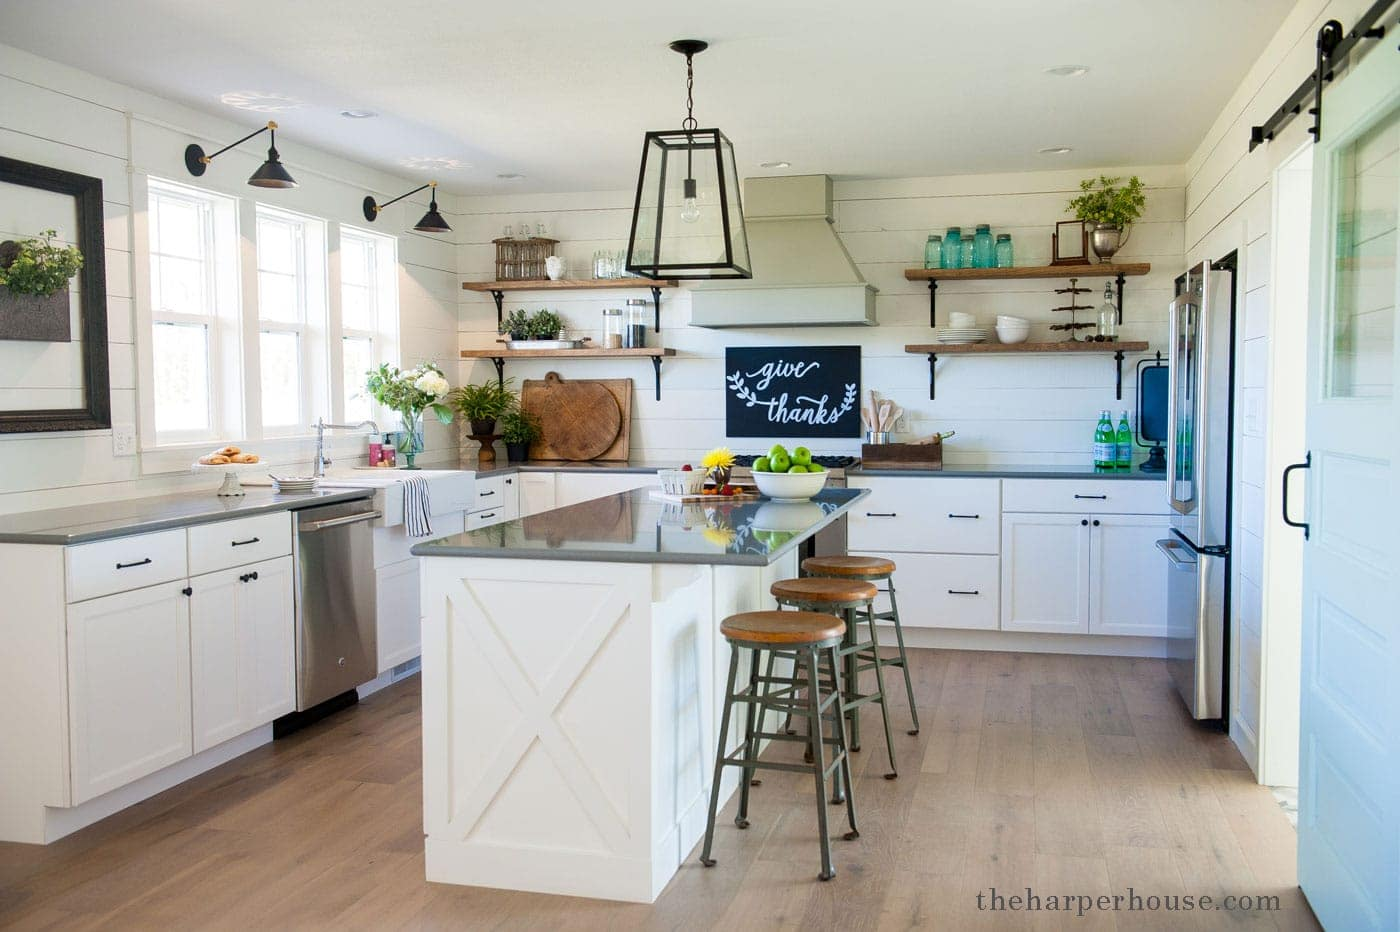 Sharing Our Fixer Upper Inspired Farmhouse Kitchen Reveal Featuring White  Shaker Cabinets, White Oak Floors